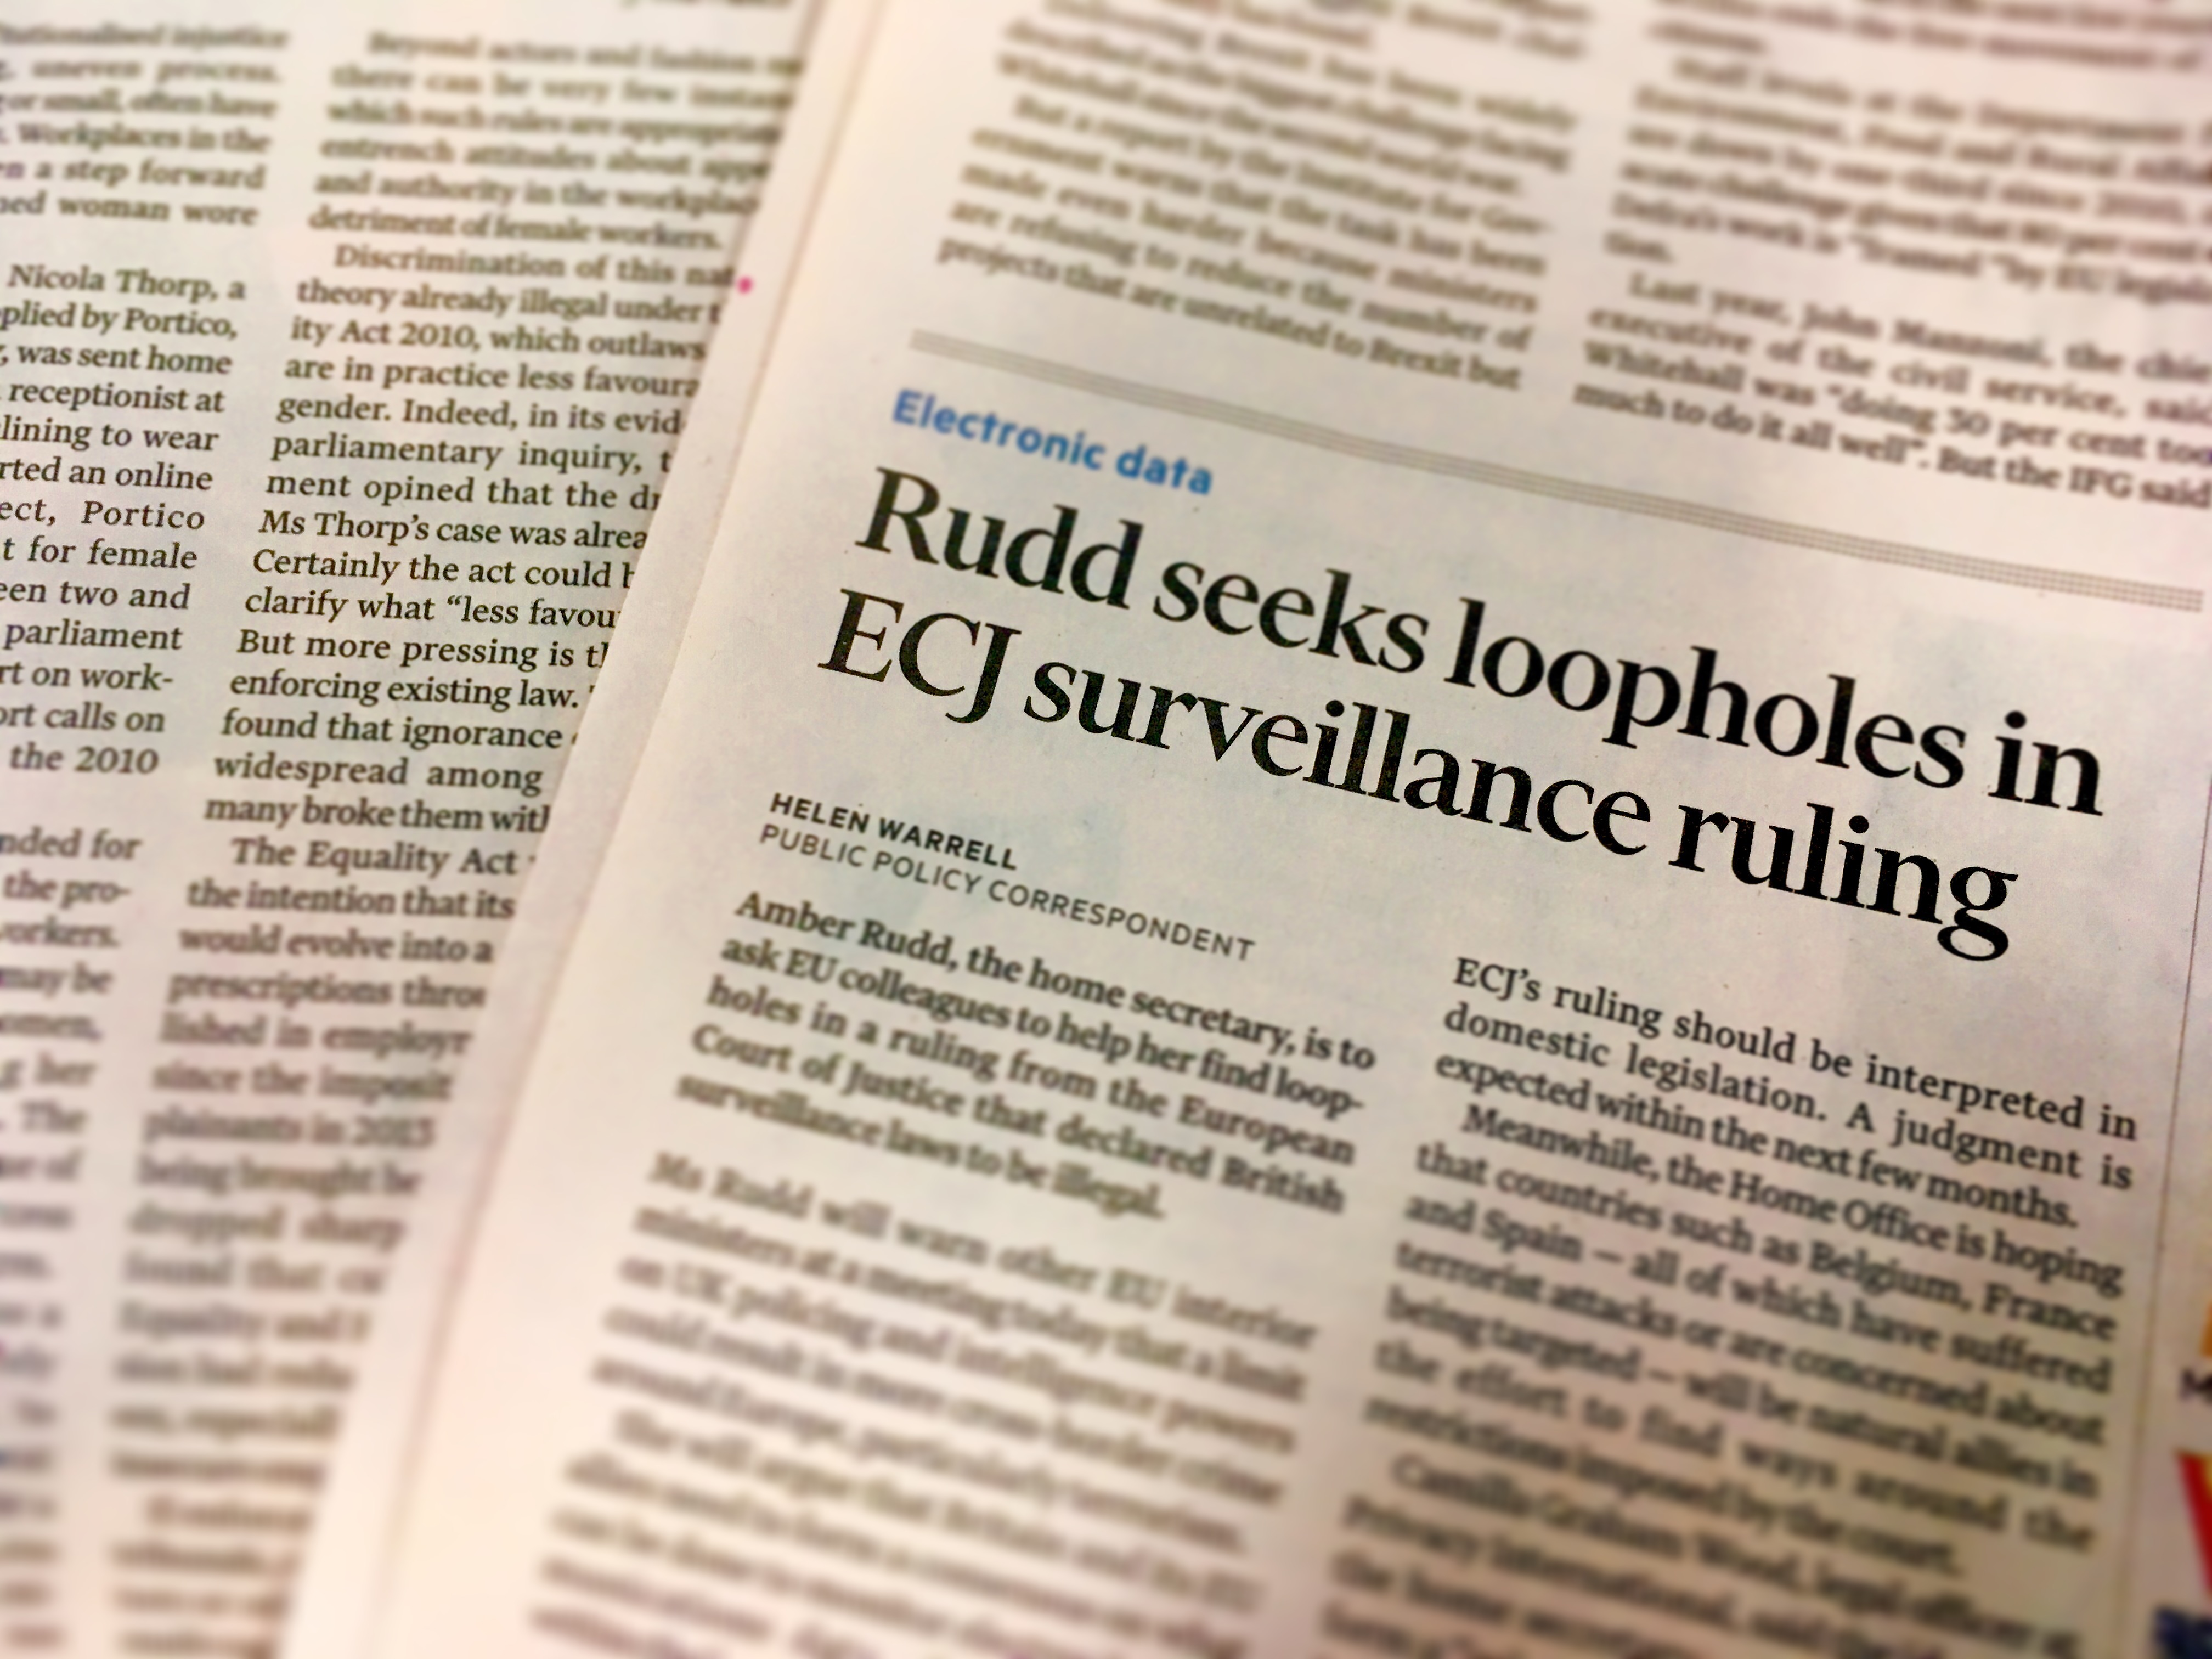 What the FT? UK to press EU for loopholes in surveillance ruling ...